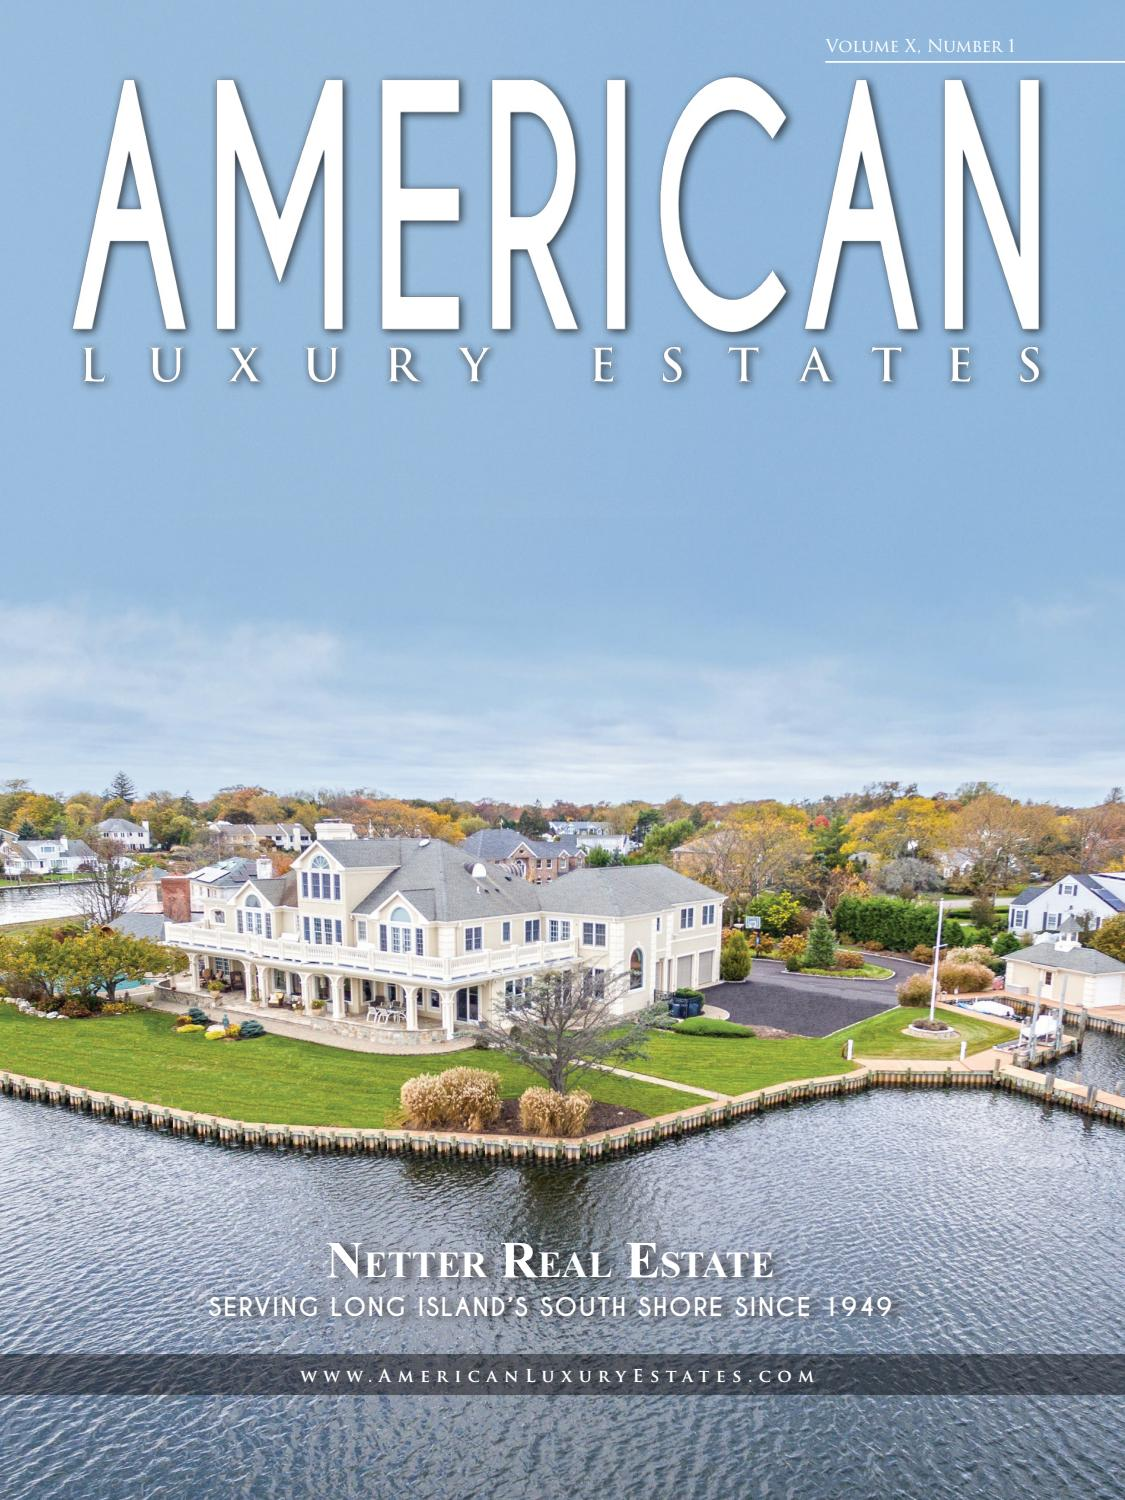 American Luxury Estates: Vol. X, No. 1 - Netter Real Estate by Real ...